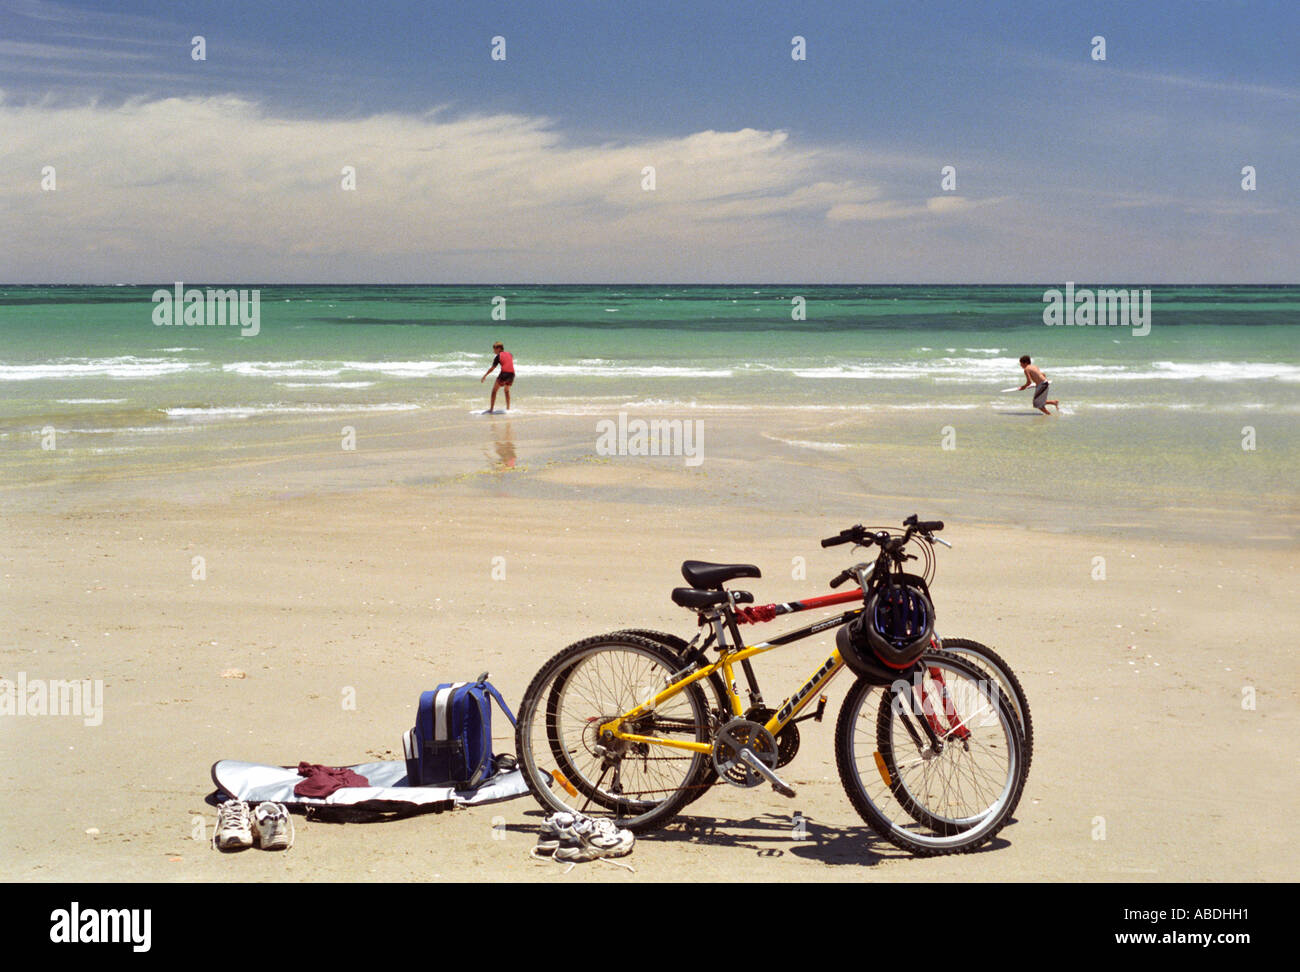 Boys playing on sandy beach bikes clothes and backpacks in foreground - Stock Image